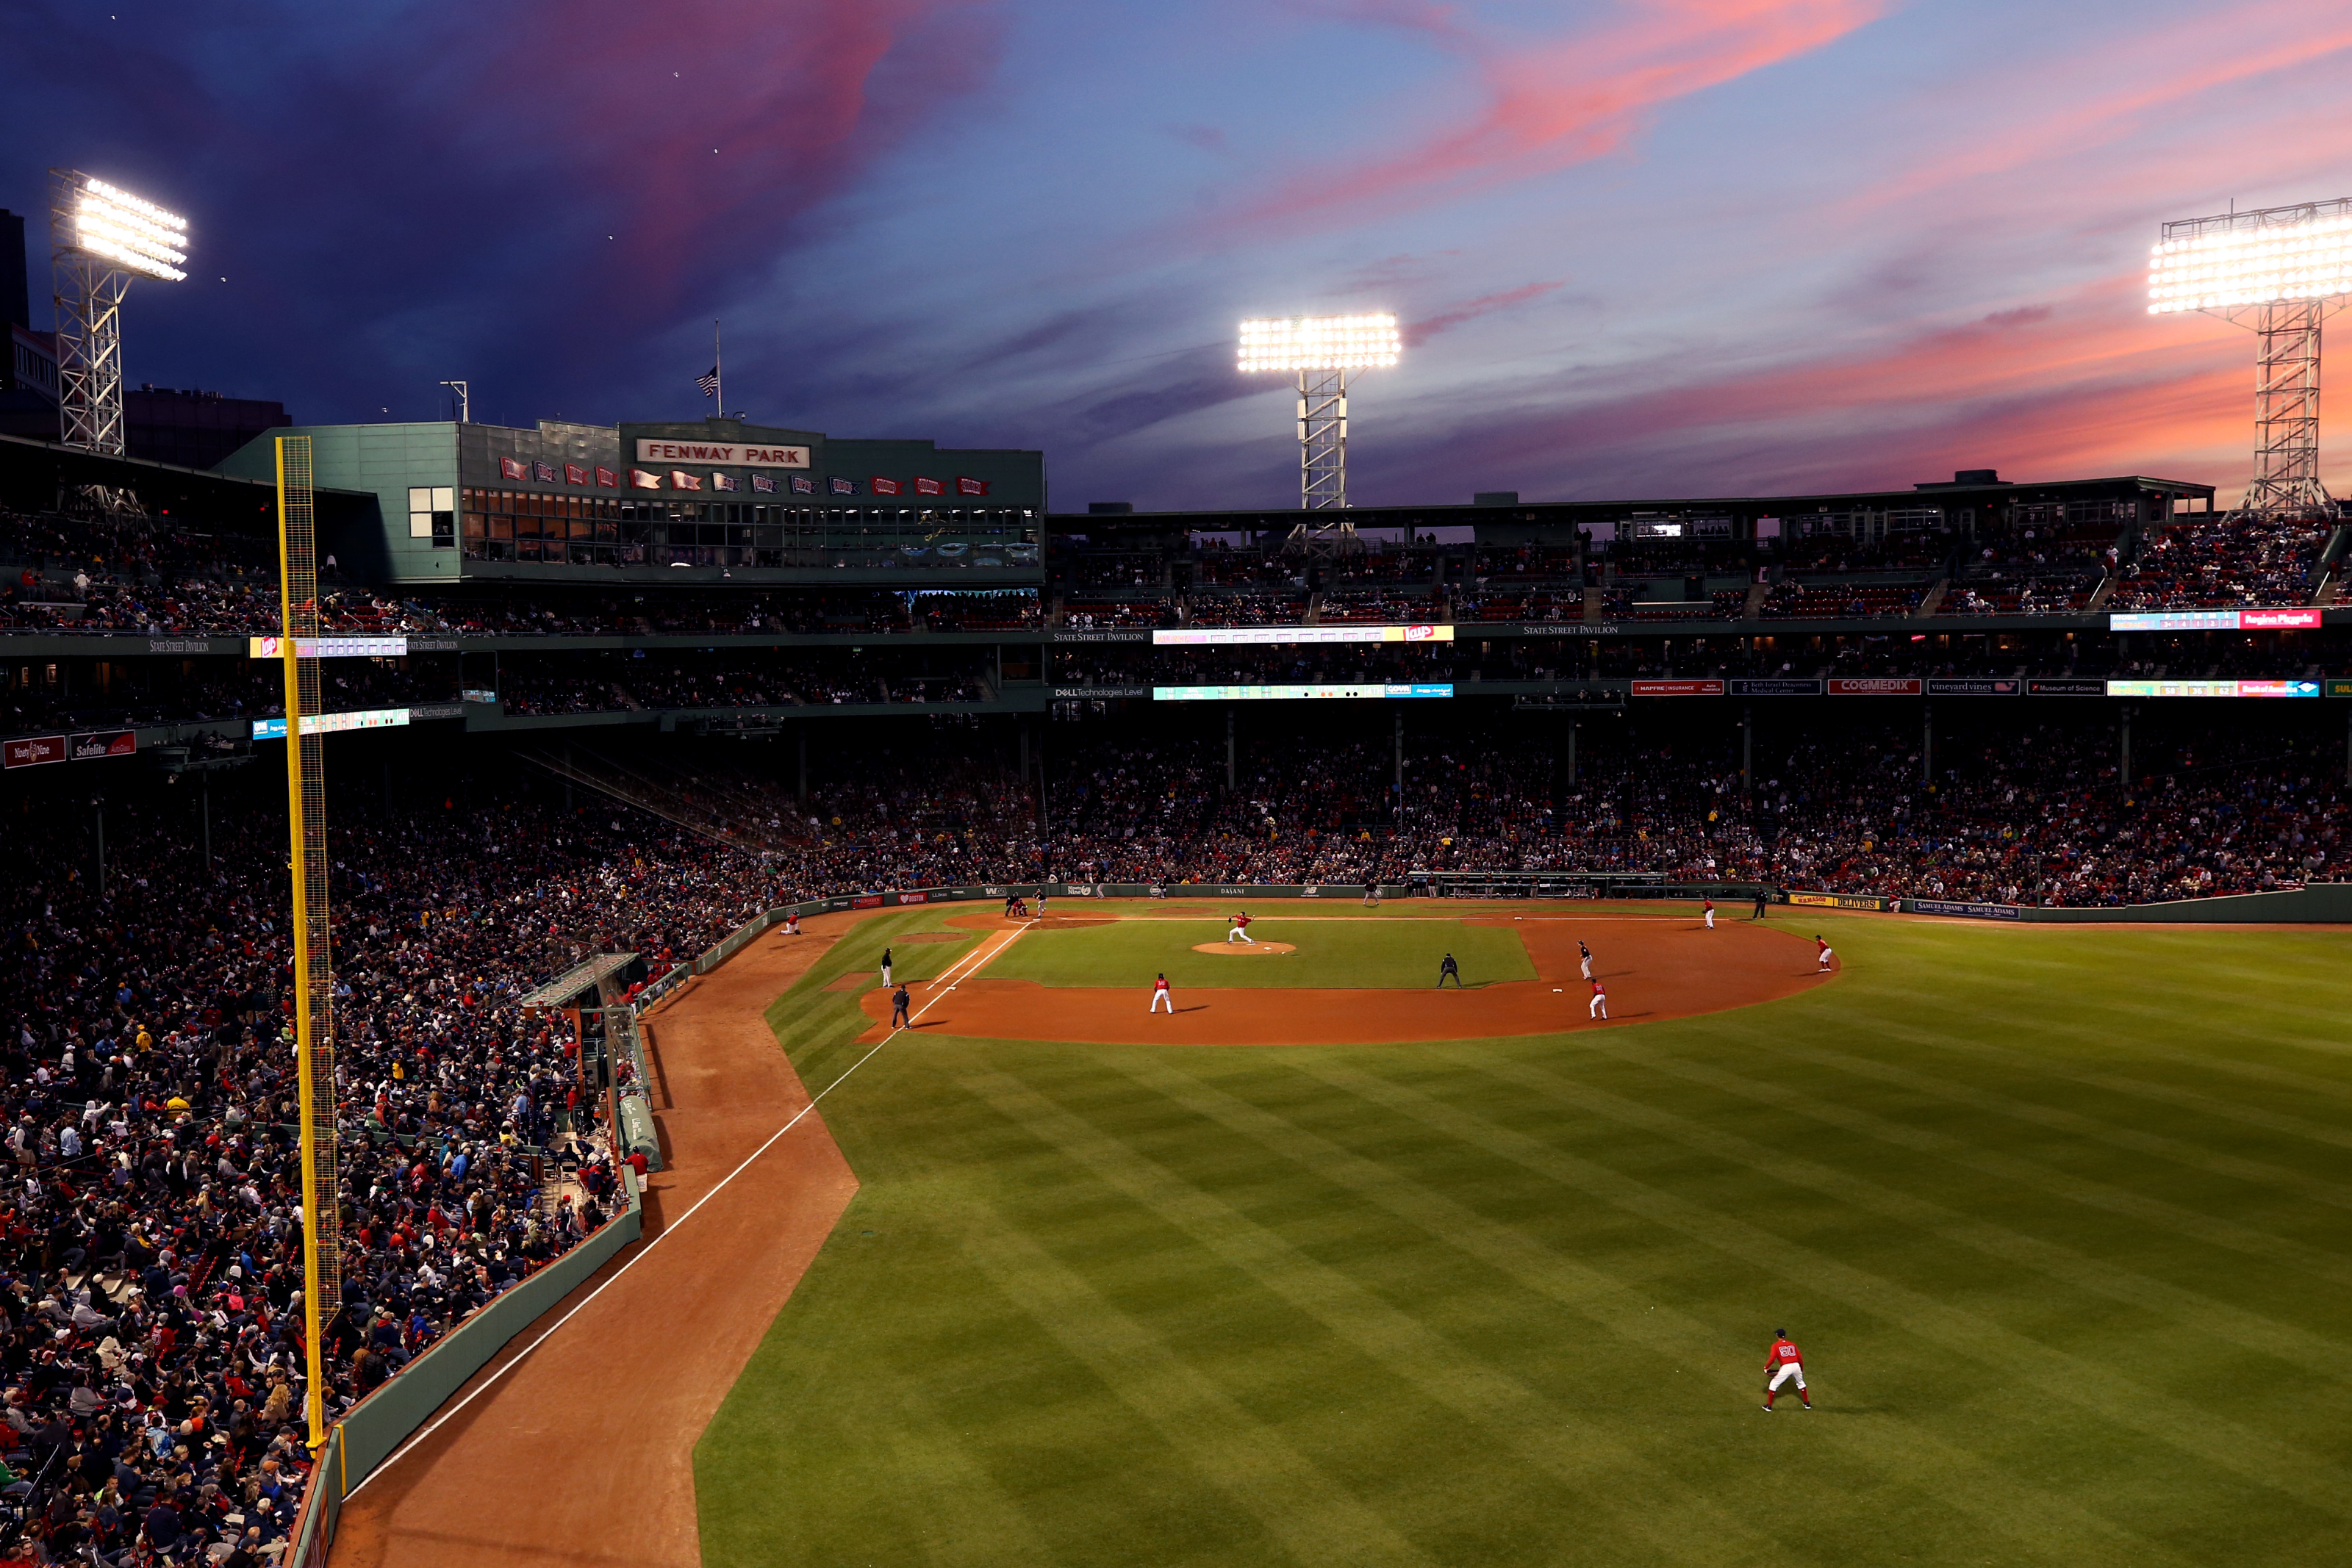 Red Sox Ticket Prices Are Being Raised 2 5 For 2019 Season